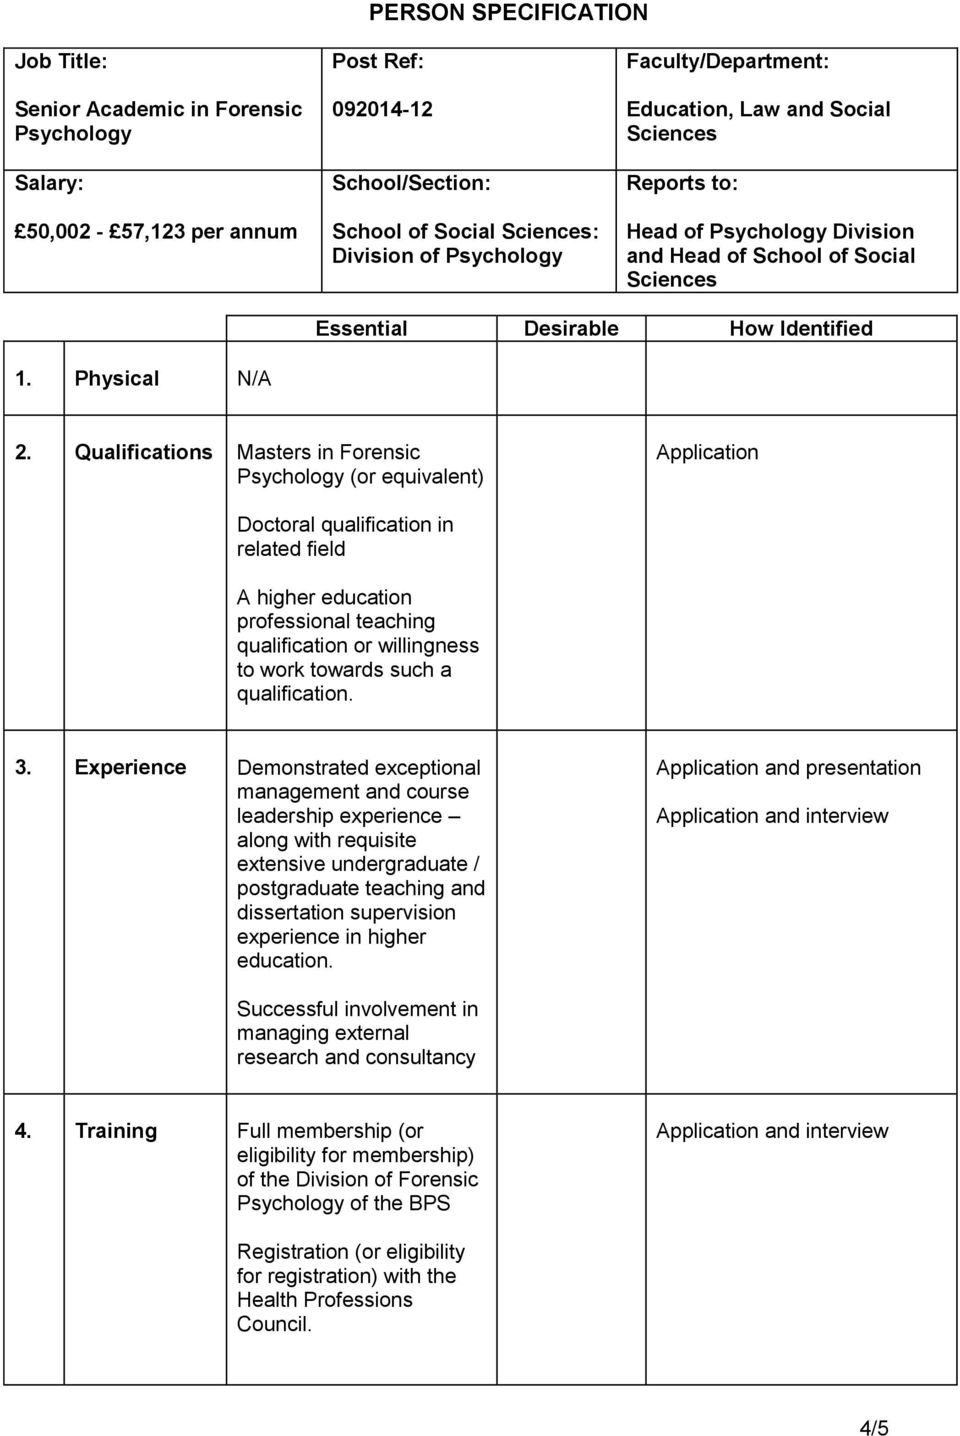 Qualifications Masters in Forensic Psychology (or equivalent) Application Doctoral qualification in related field A higher education professional teaching qualification or willingness to work towards